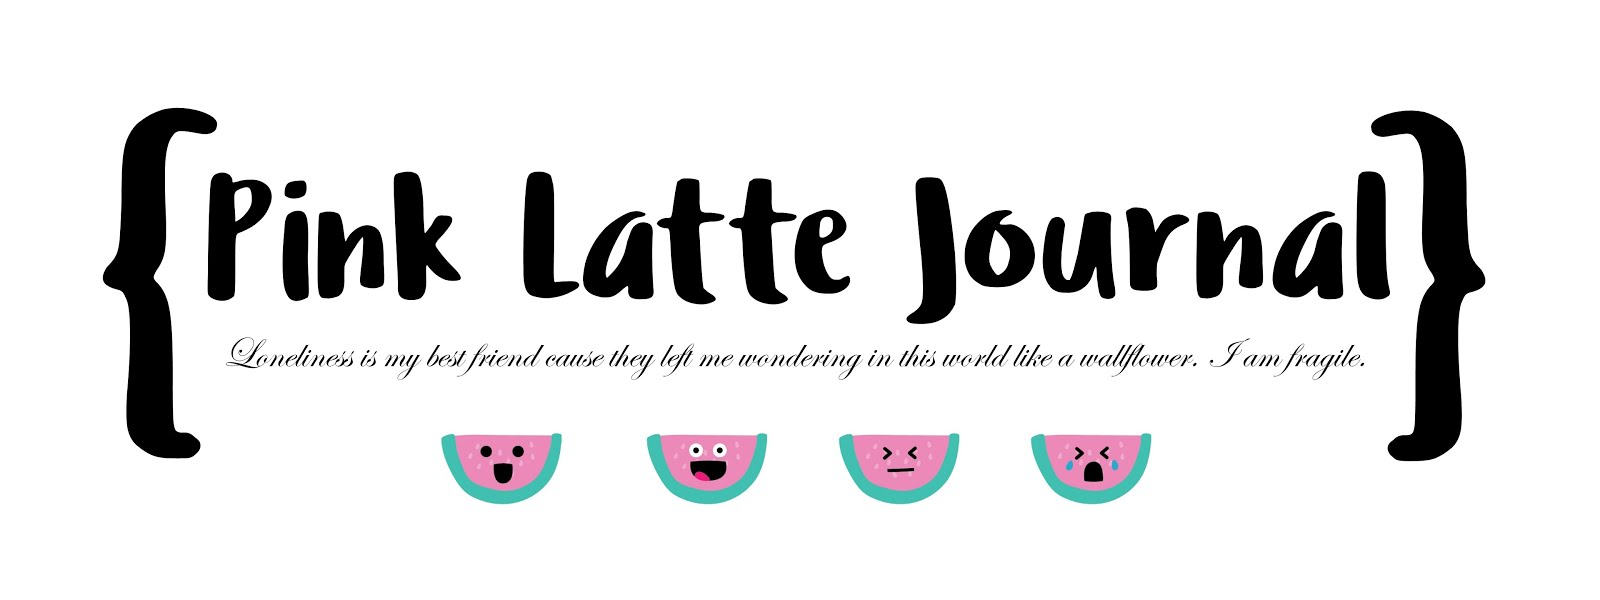 Pink latte journal